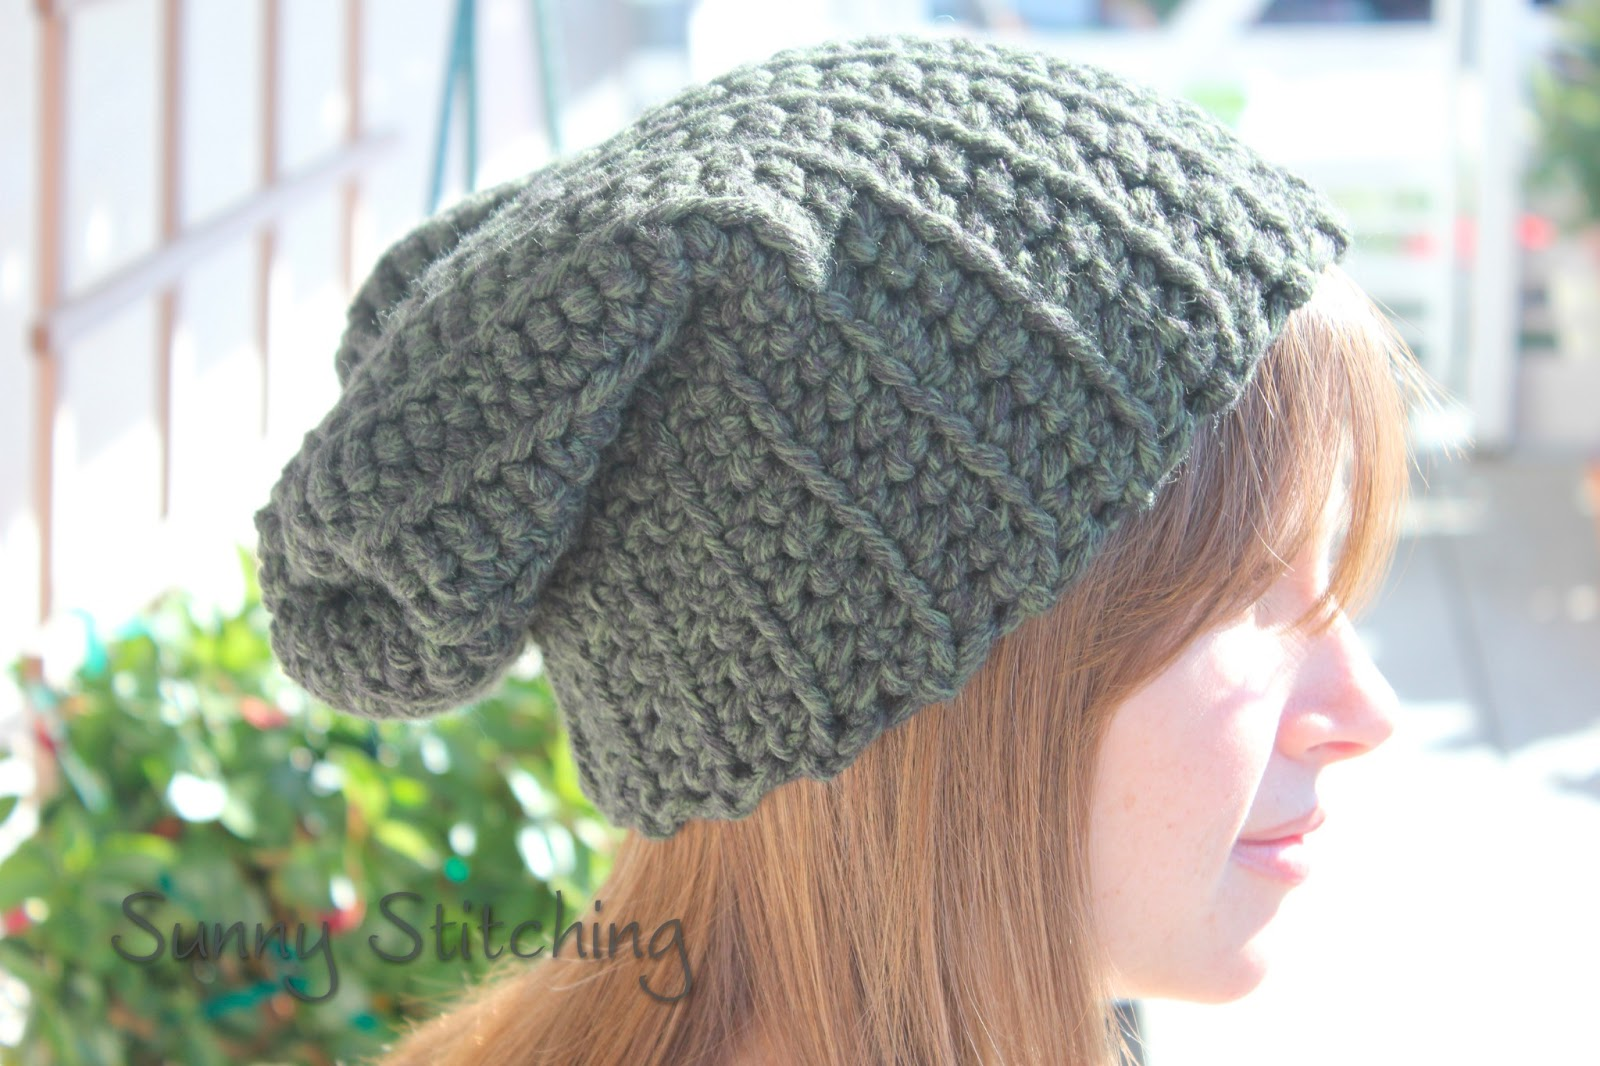 Crocheting Hats Patterns : Crochet Ribbed Slouchy Hat Free Pattern : Sunny Stitching